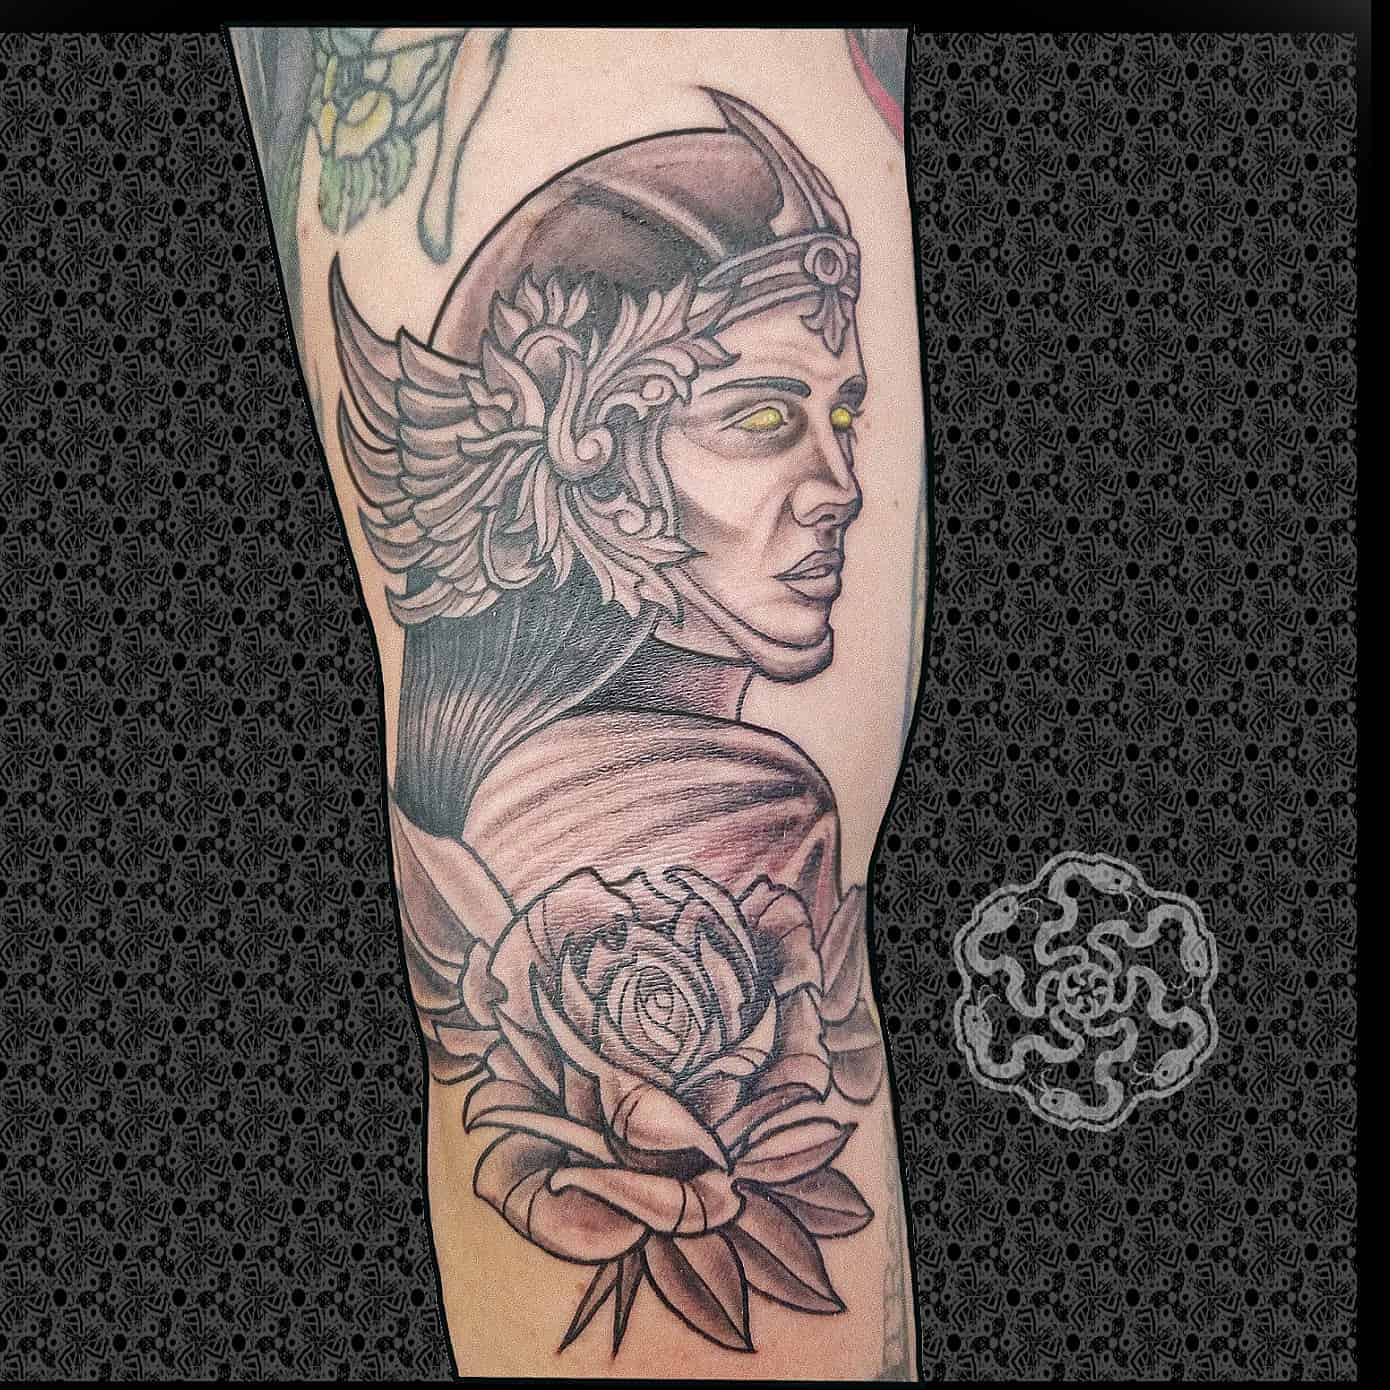 neotraditional tattoo in black and grey of valkyrie